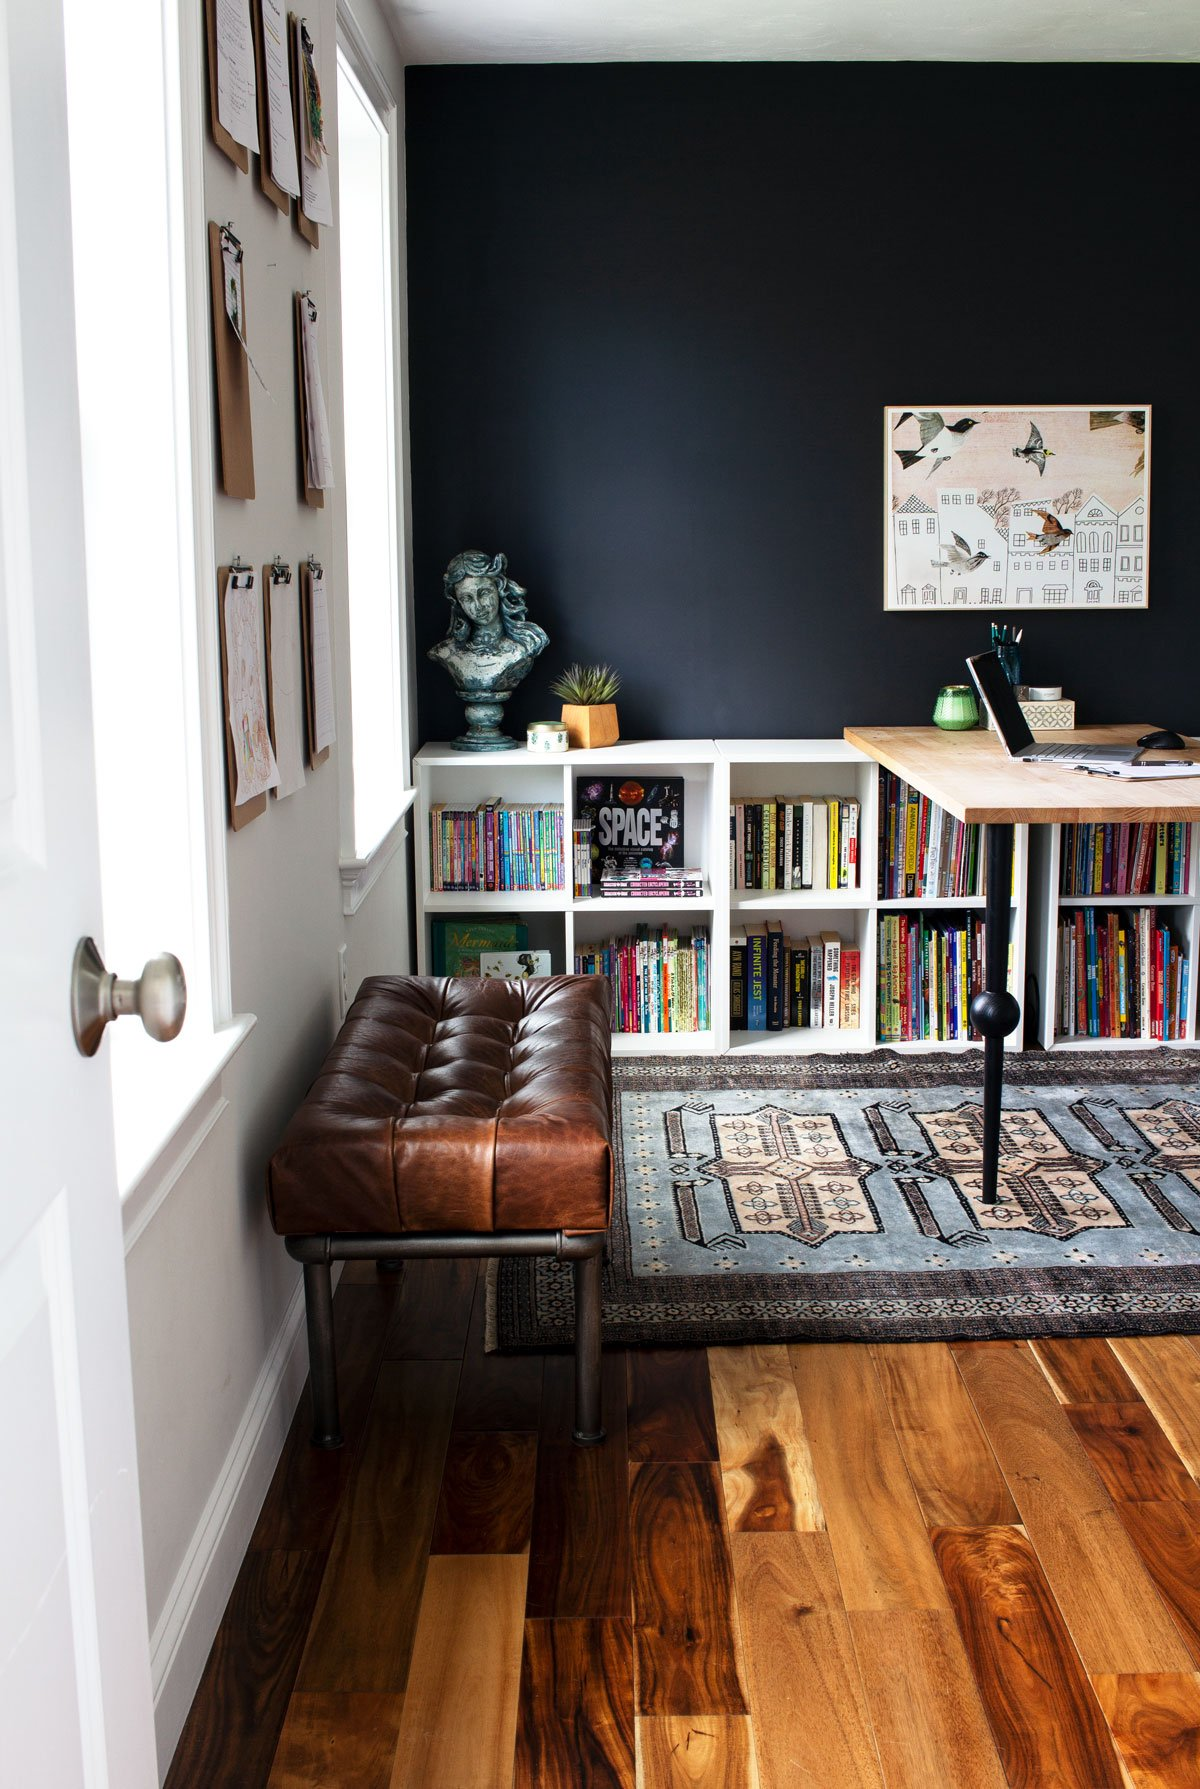 Before & After: A Sloppy Guest Room Turned Graphic Home Office